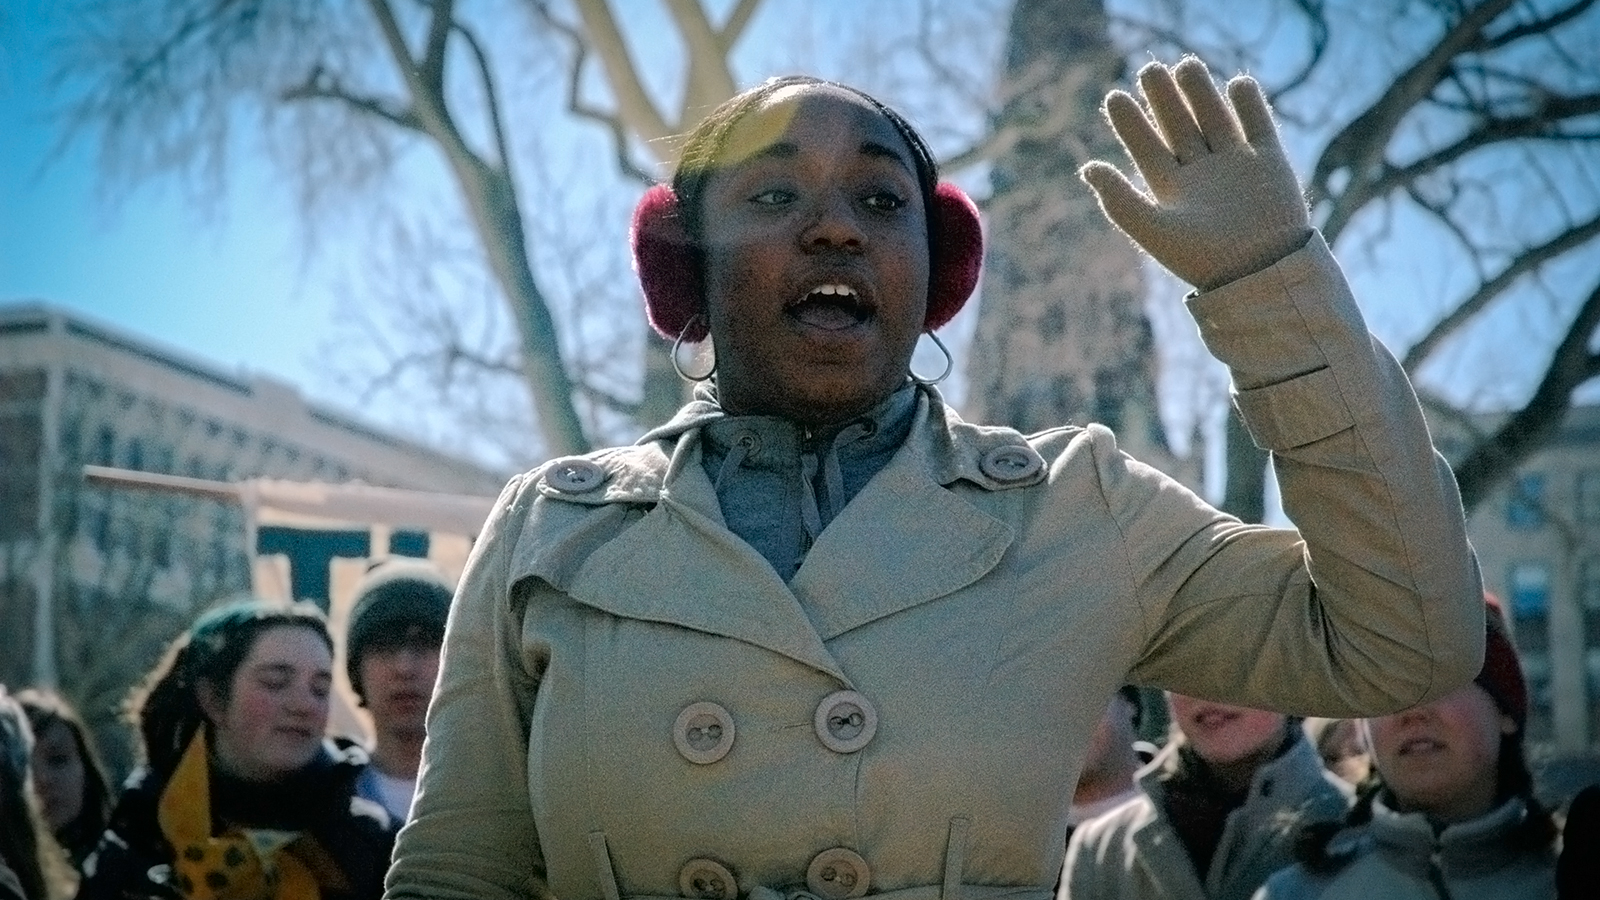 A woman in red earmuffs speaks with one raised against a blue sky with people and trees in the background